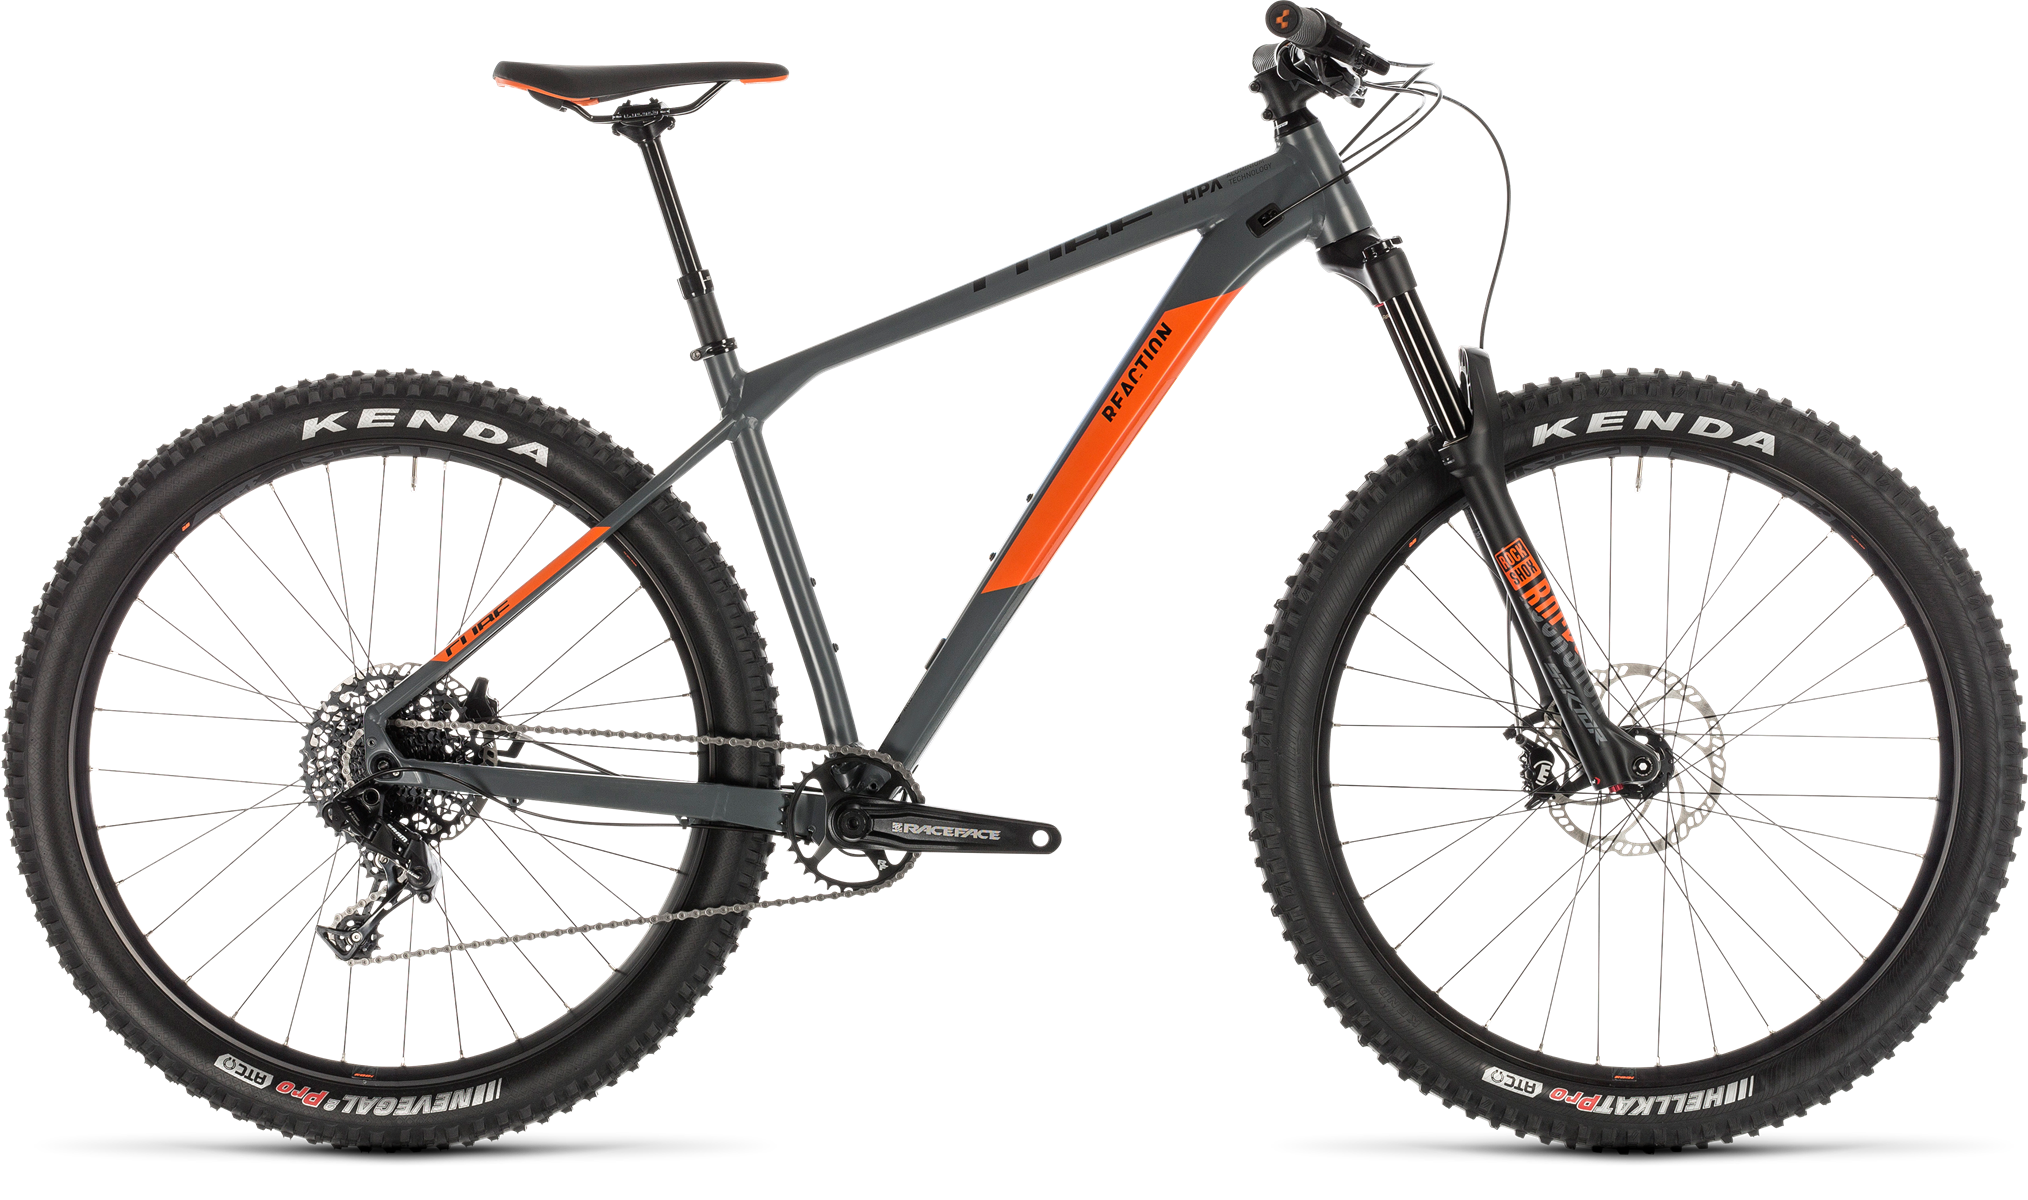 2019 Cube Reaction TM Pro Hardtail Mountain Bike in Grey £